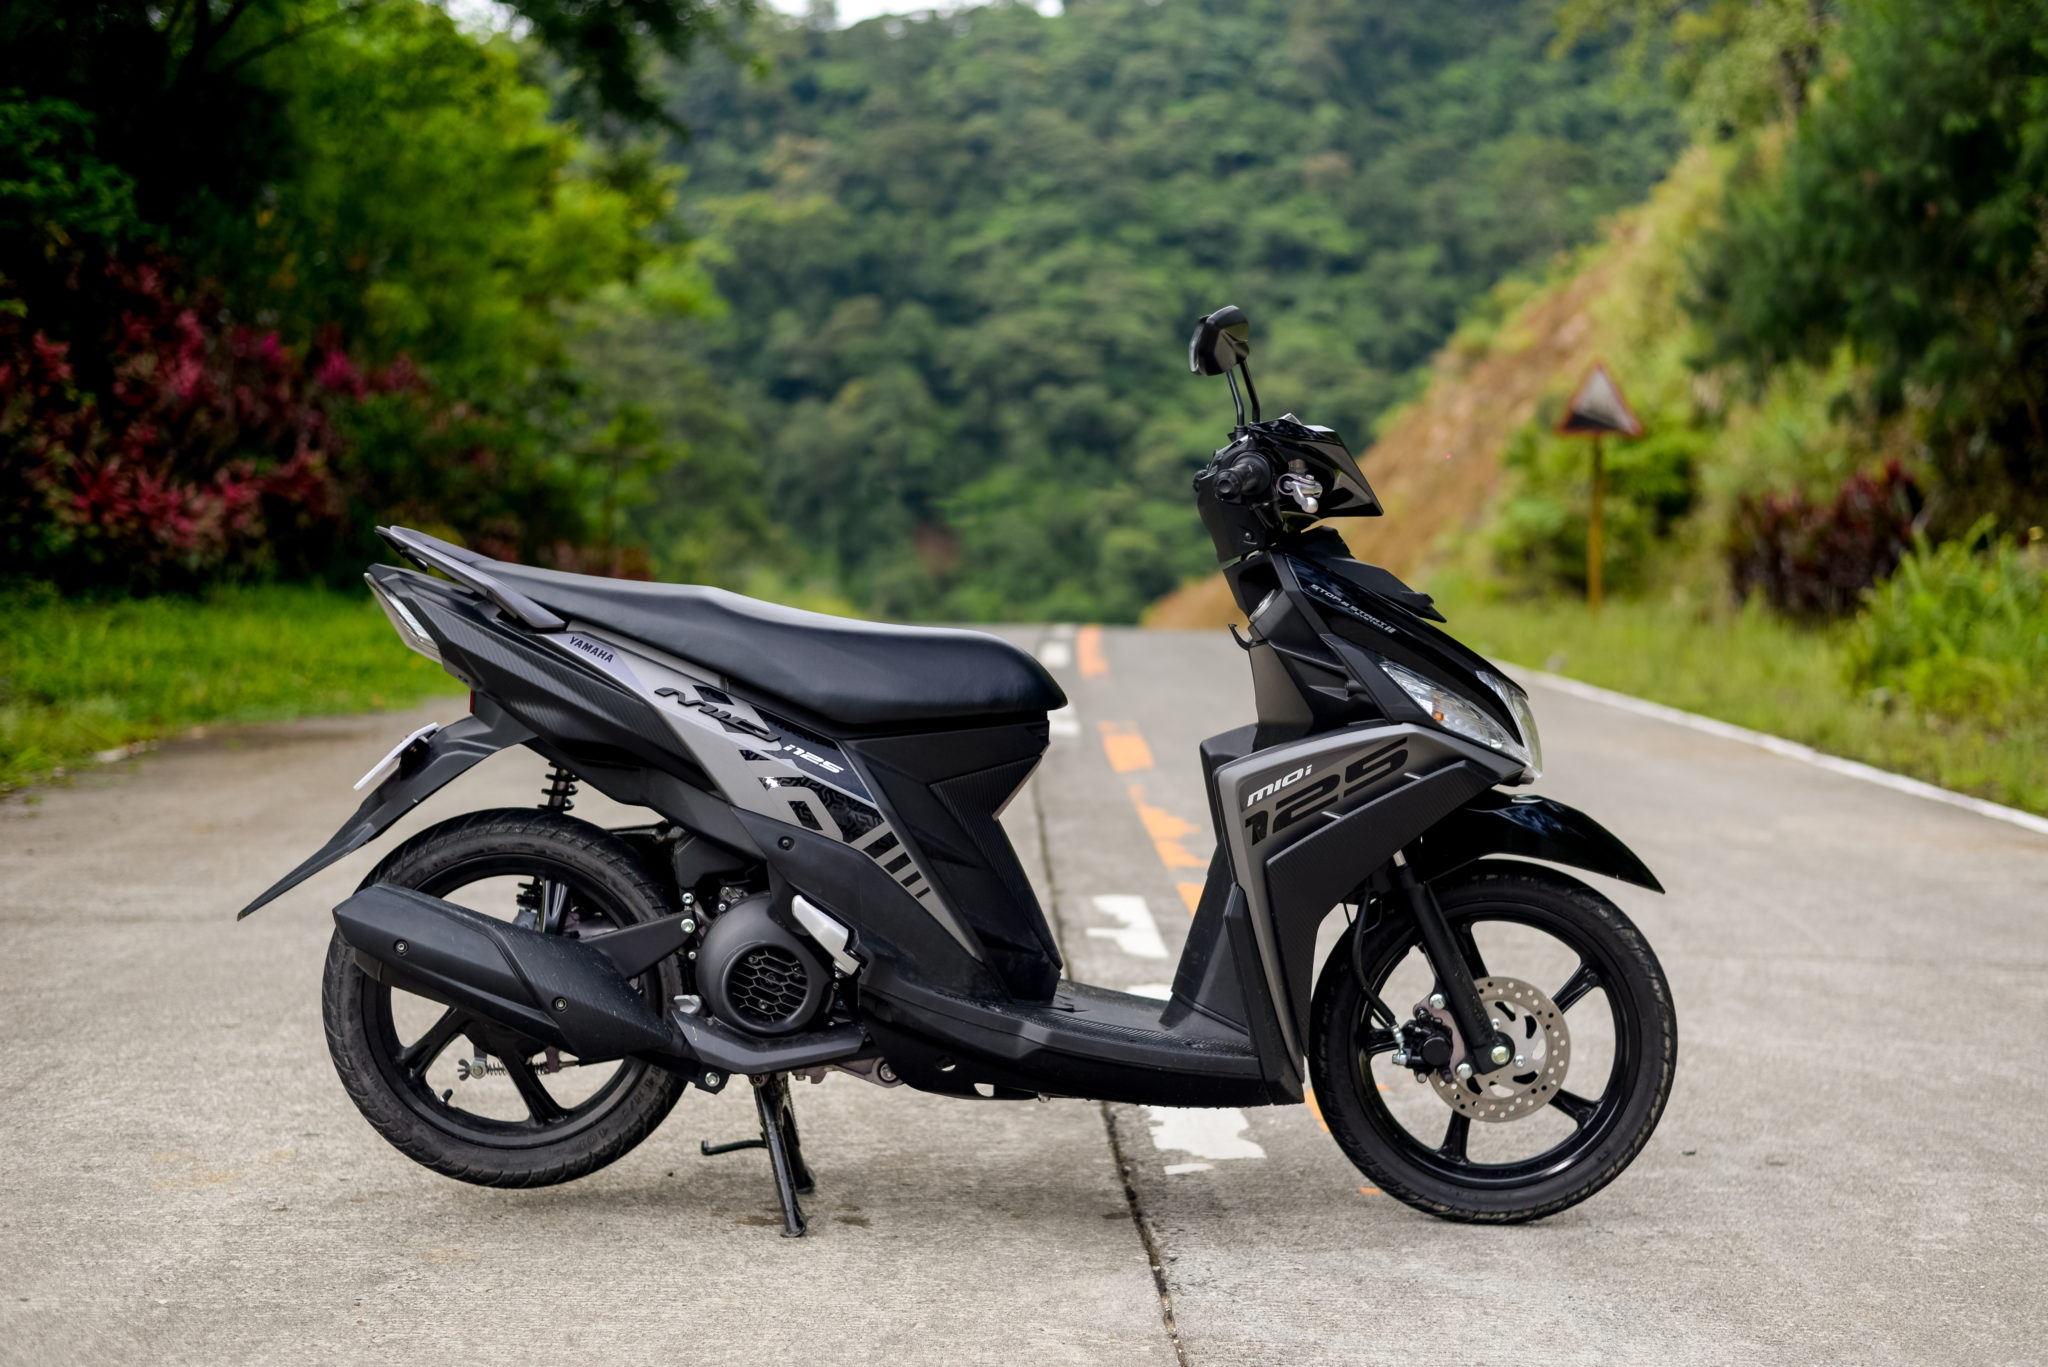 Yamaha Mio I 125 S C Magazine Automatic Bike Headlight Switch For Years Has Cornered The Biggest Slice Of Segment With Their Popular Line Scooters And At Current Rate That